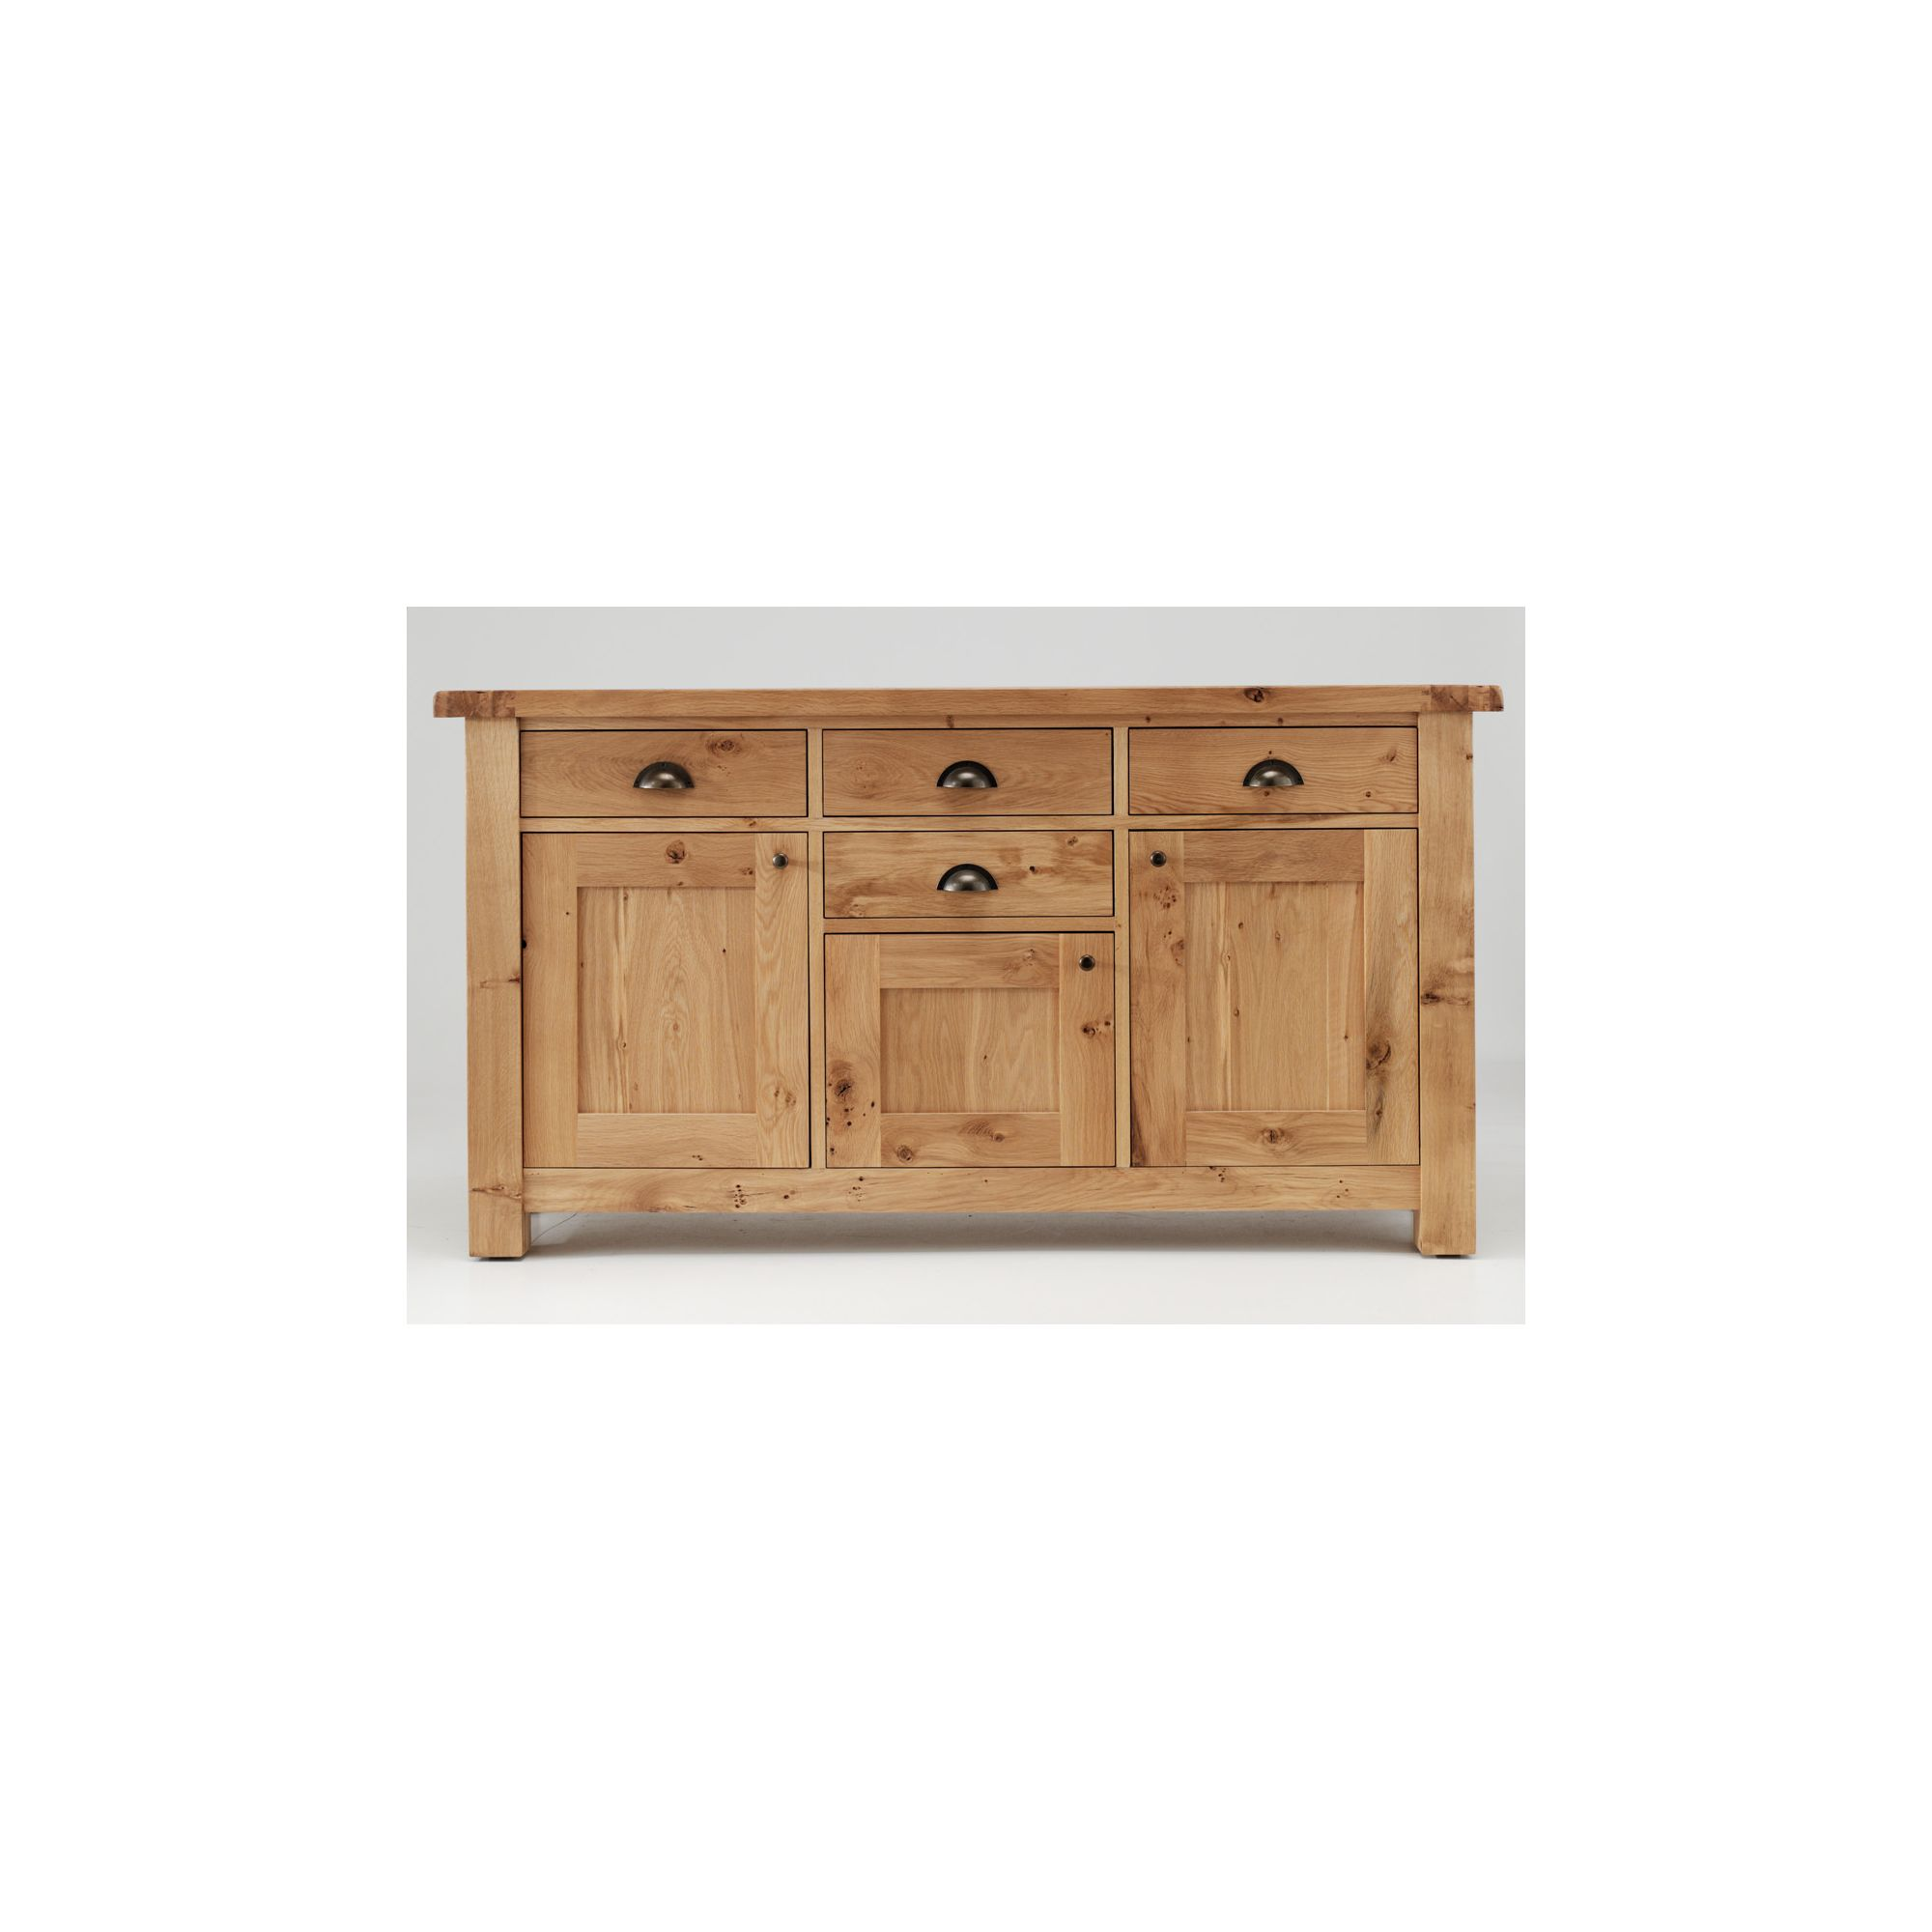 Originals Normandy Wide Sideboard at Tesco Direct